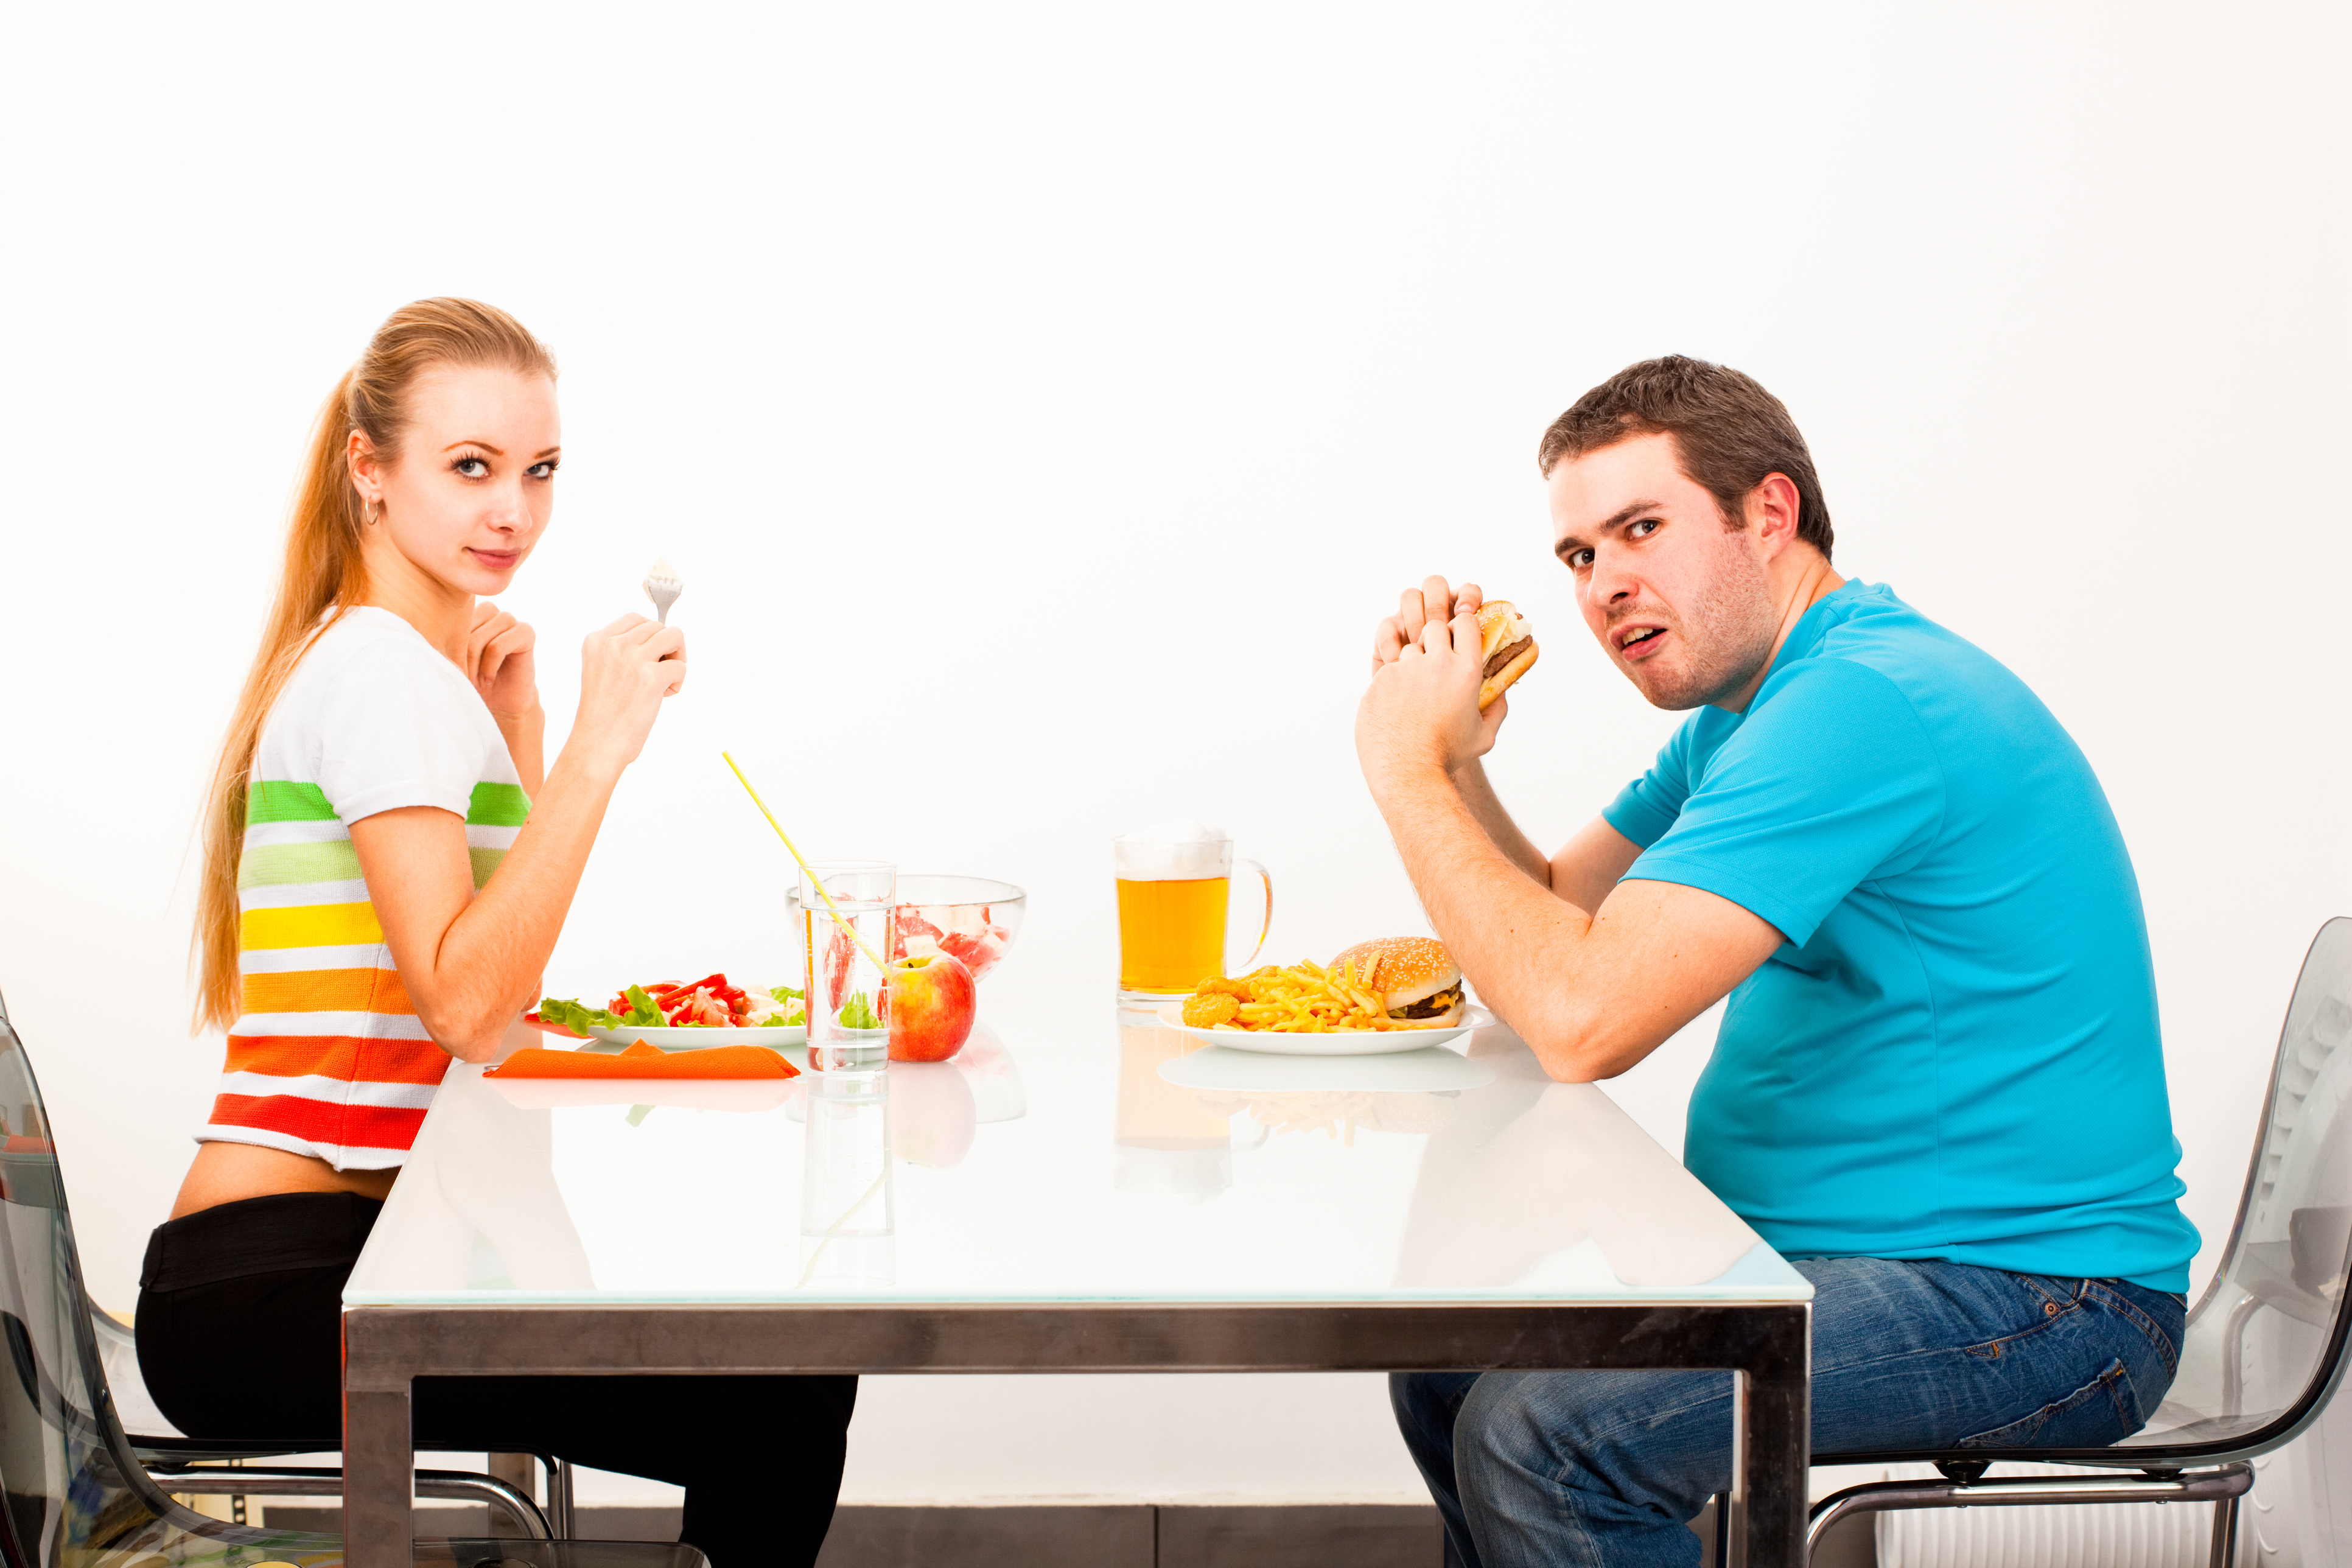 Online Dating: What To Do If Your Date Is Overweight?